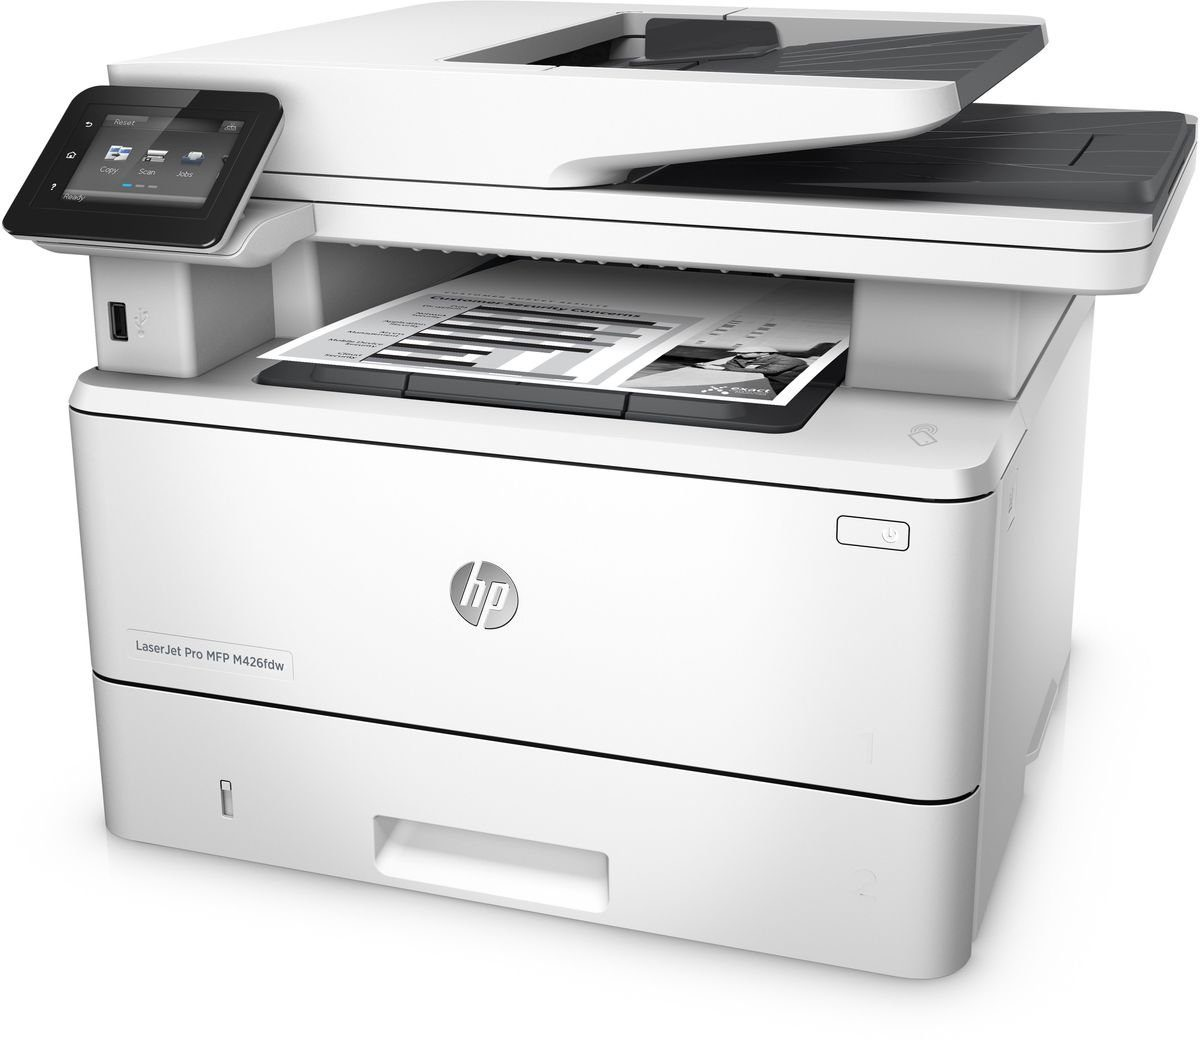 HEWLETT-PACKARD Monolaser-Multifunktionsdrucker »MFP M426fdw 4in1 Multifunktionsdrucker«